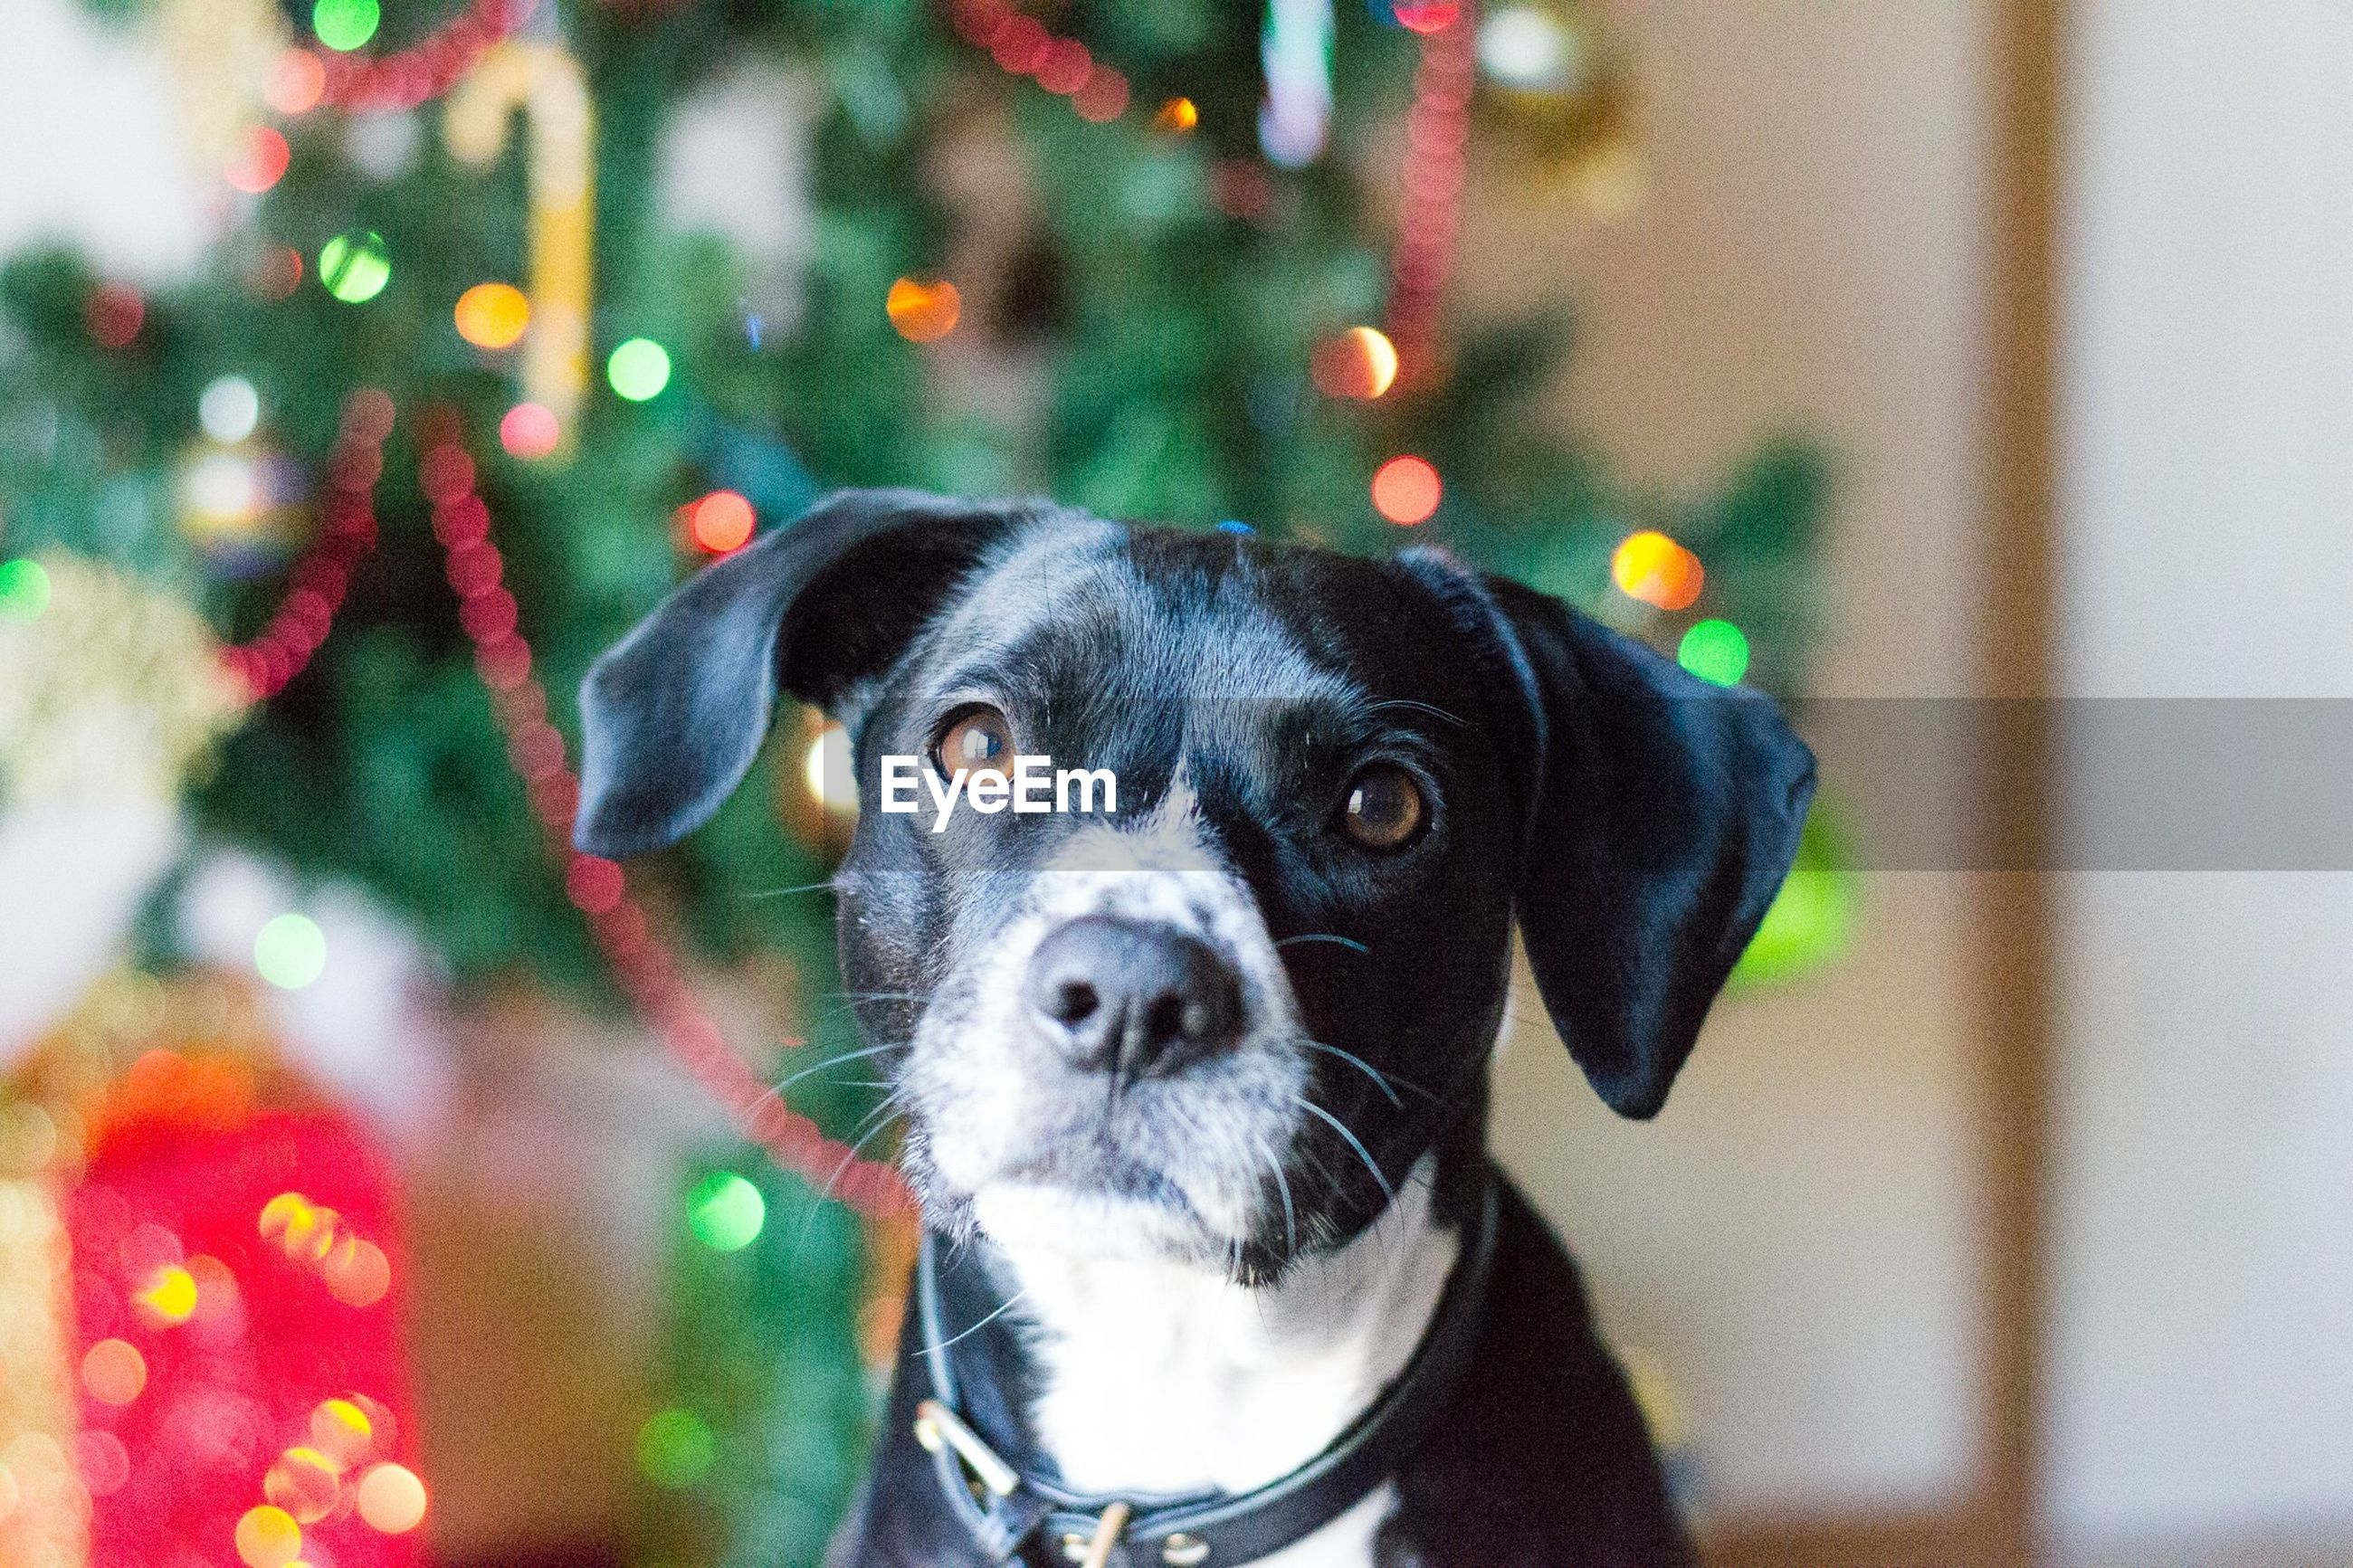 Close-up portrait of dog against christmas tree at home